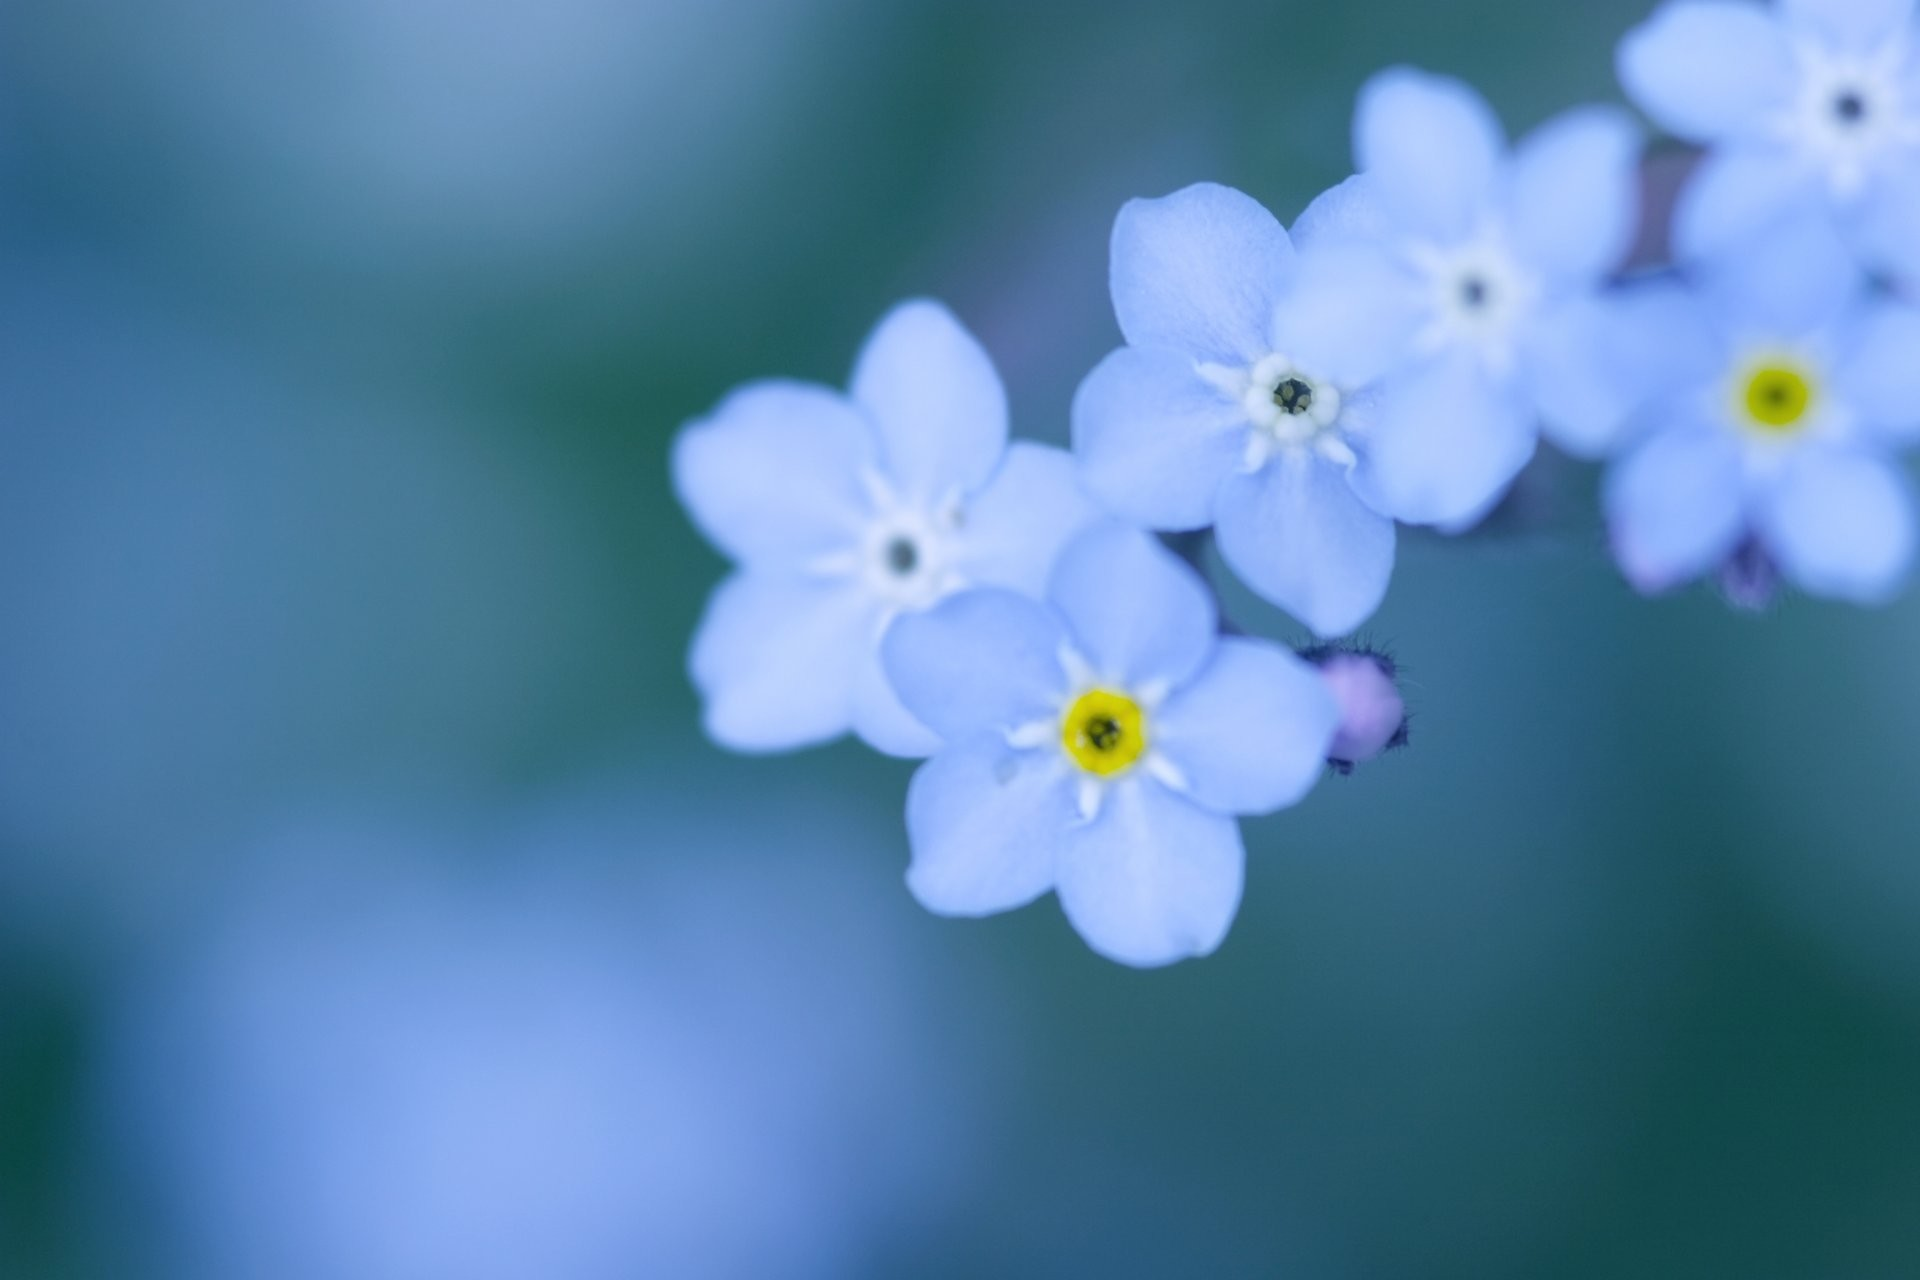 Blue flowers background 53 pictures 1920x1080 blue flowers background izmirmasajfo